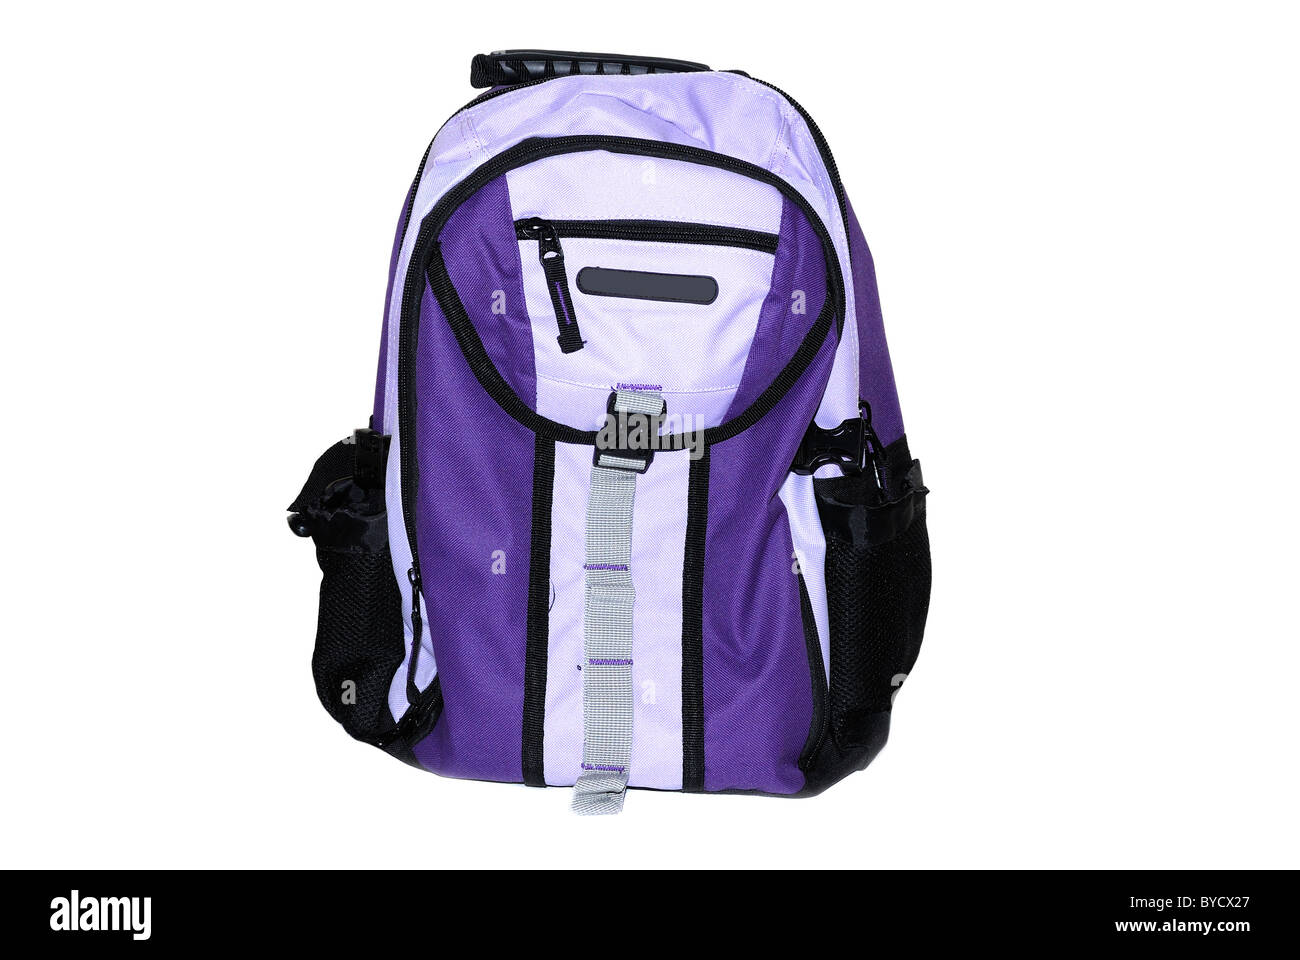 Students purple back pack isolated on white background - Stock Image